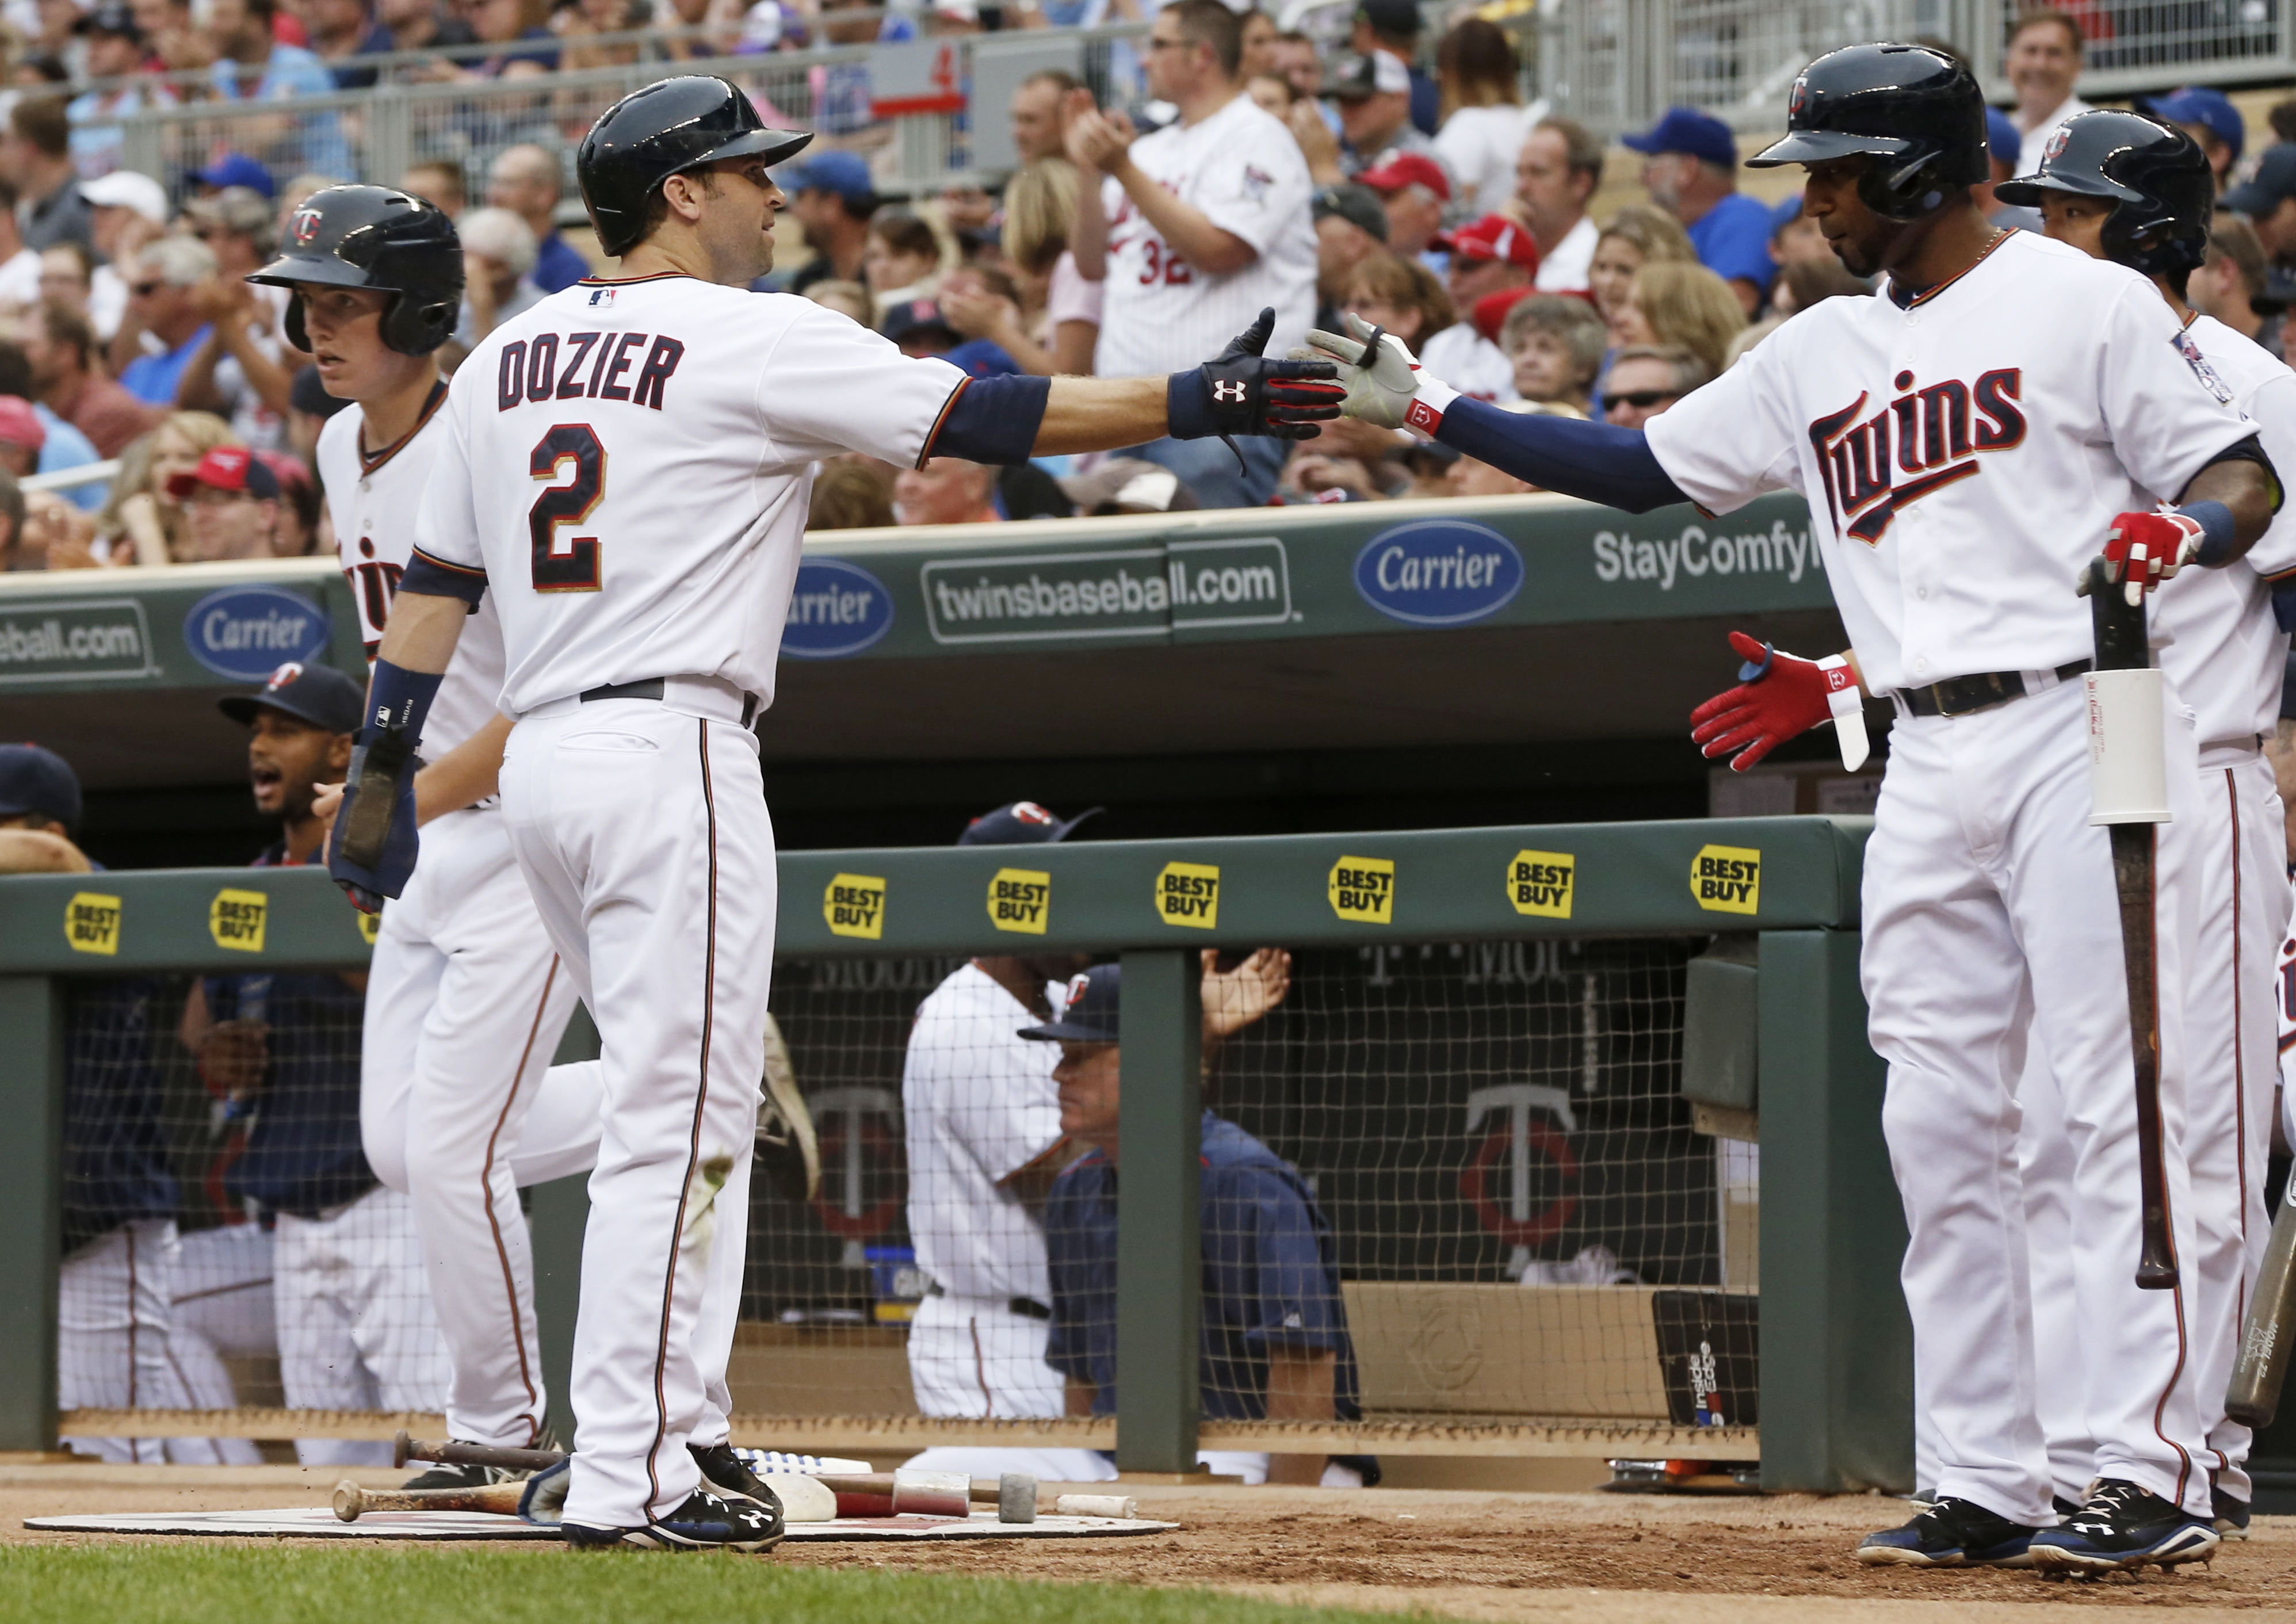 Minnesota Twins' Brian Dozier, left, is congratulated by Eduardo Nunez after he and Eddie Rosario scored on an error by Chicago Cubs' Starlin Castro during the first inning of a baseball game, Friday, June 19, 2015, in Minneapolis.  (AP Photo/Jim Mone)